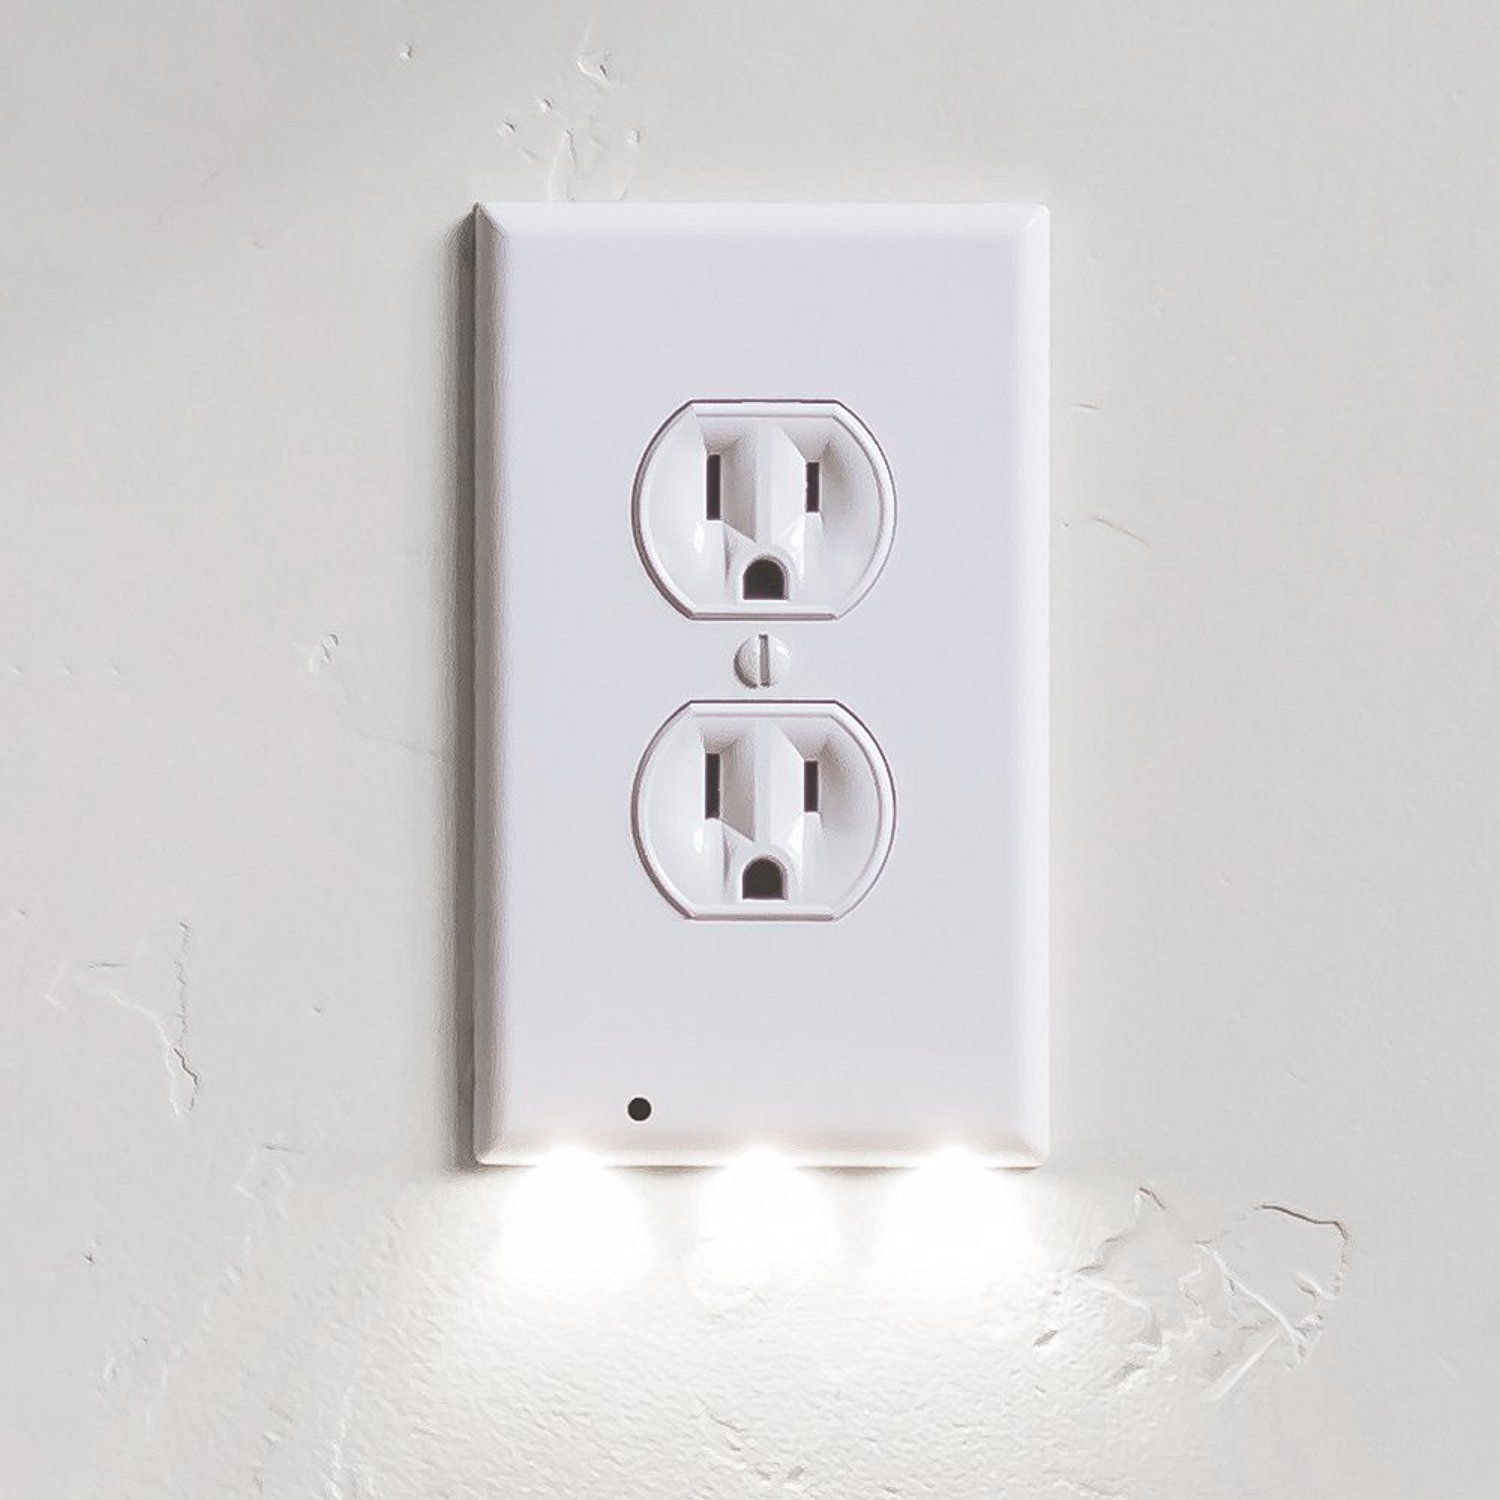 1 Pack SnapPower Guidelight - Outlet Wall Plate With LED Night ...